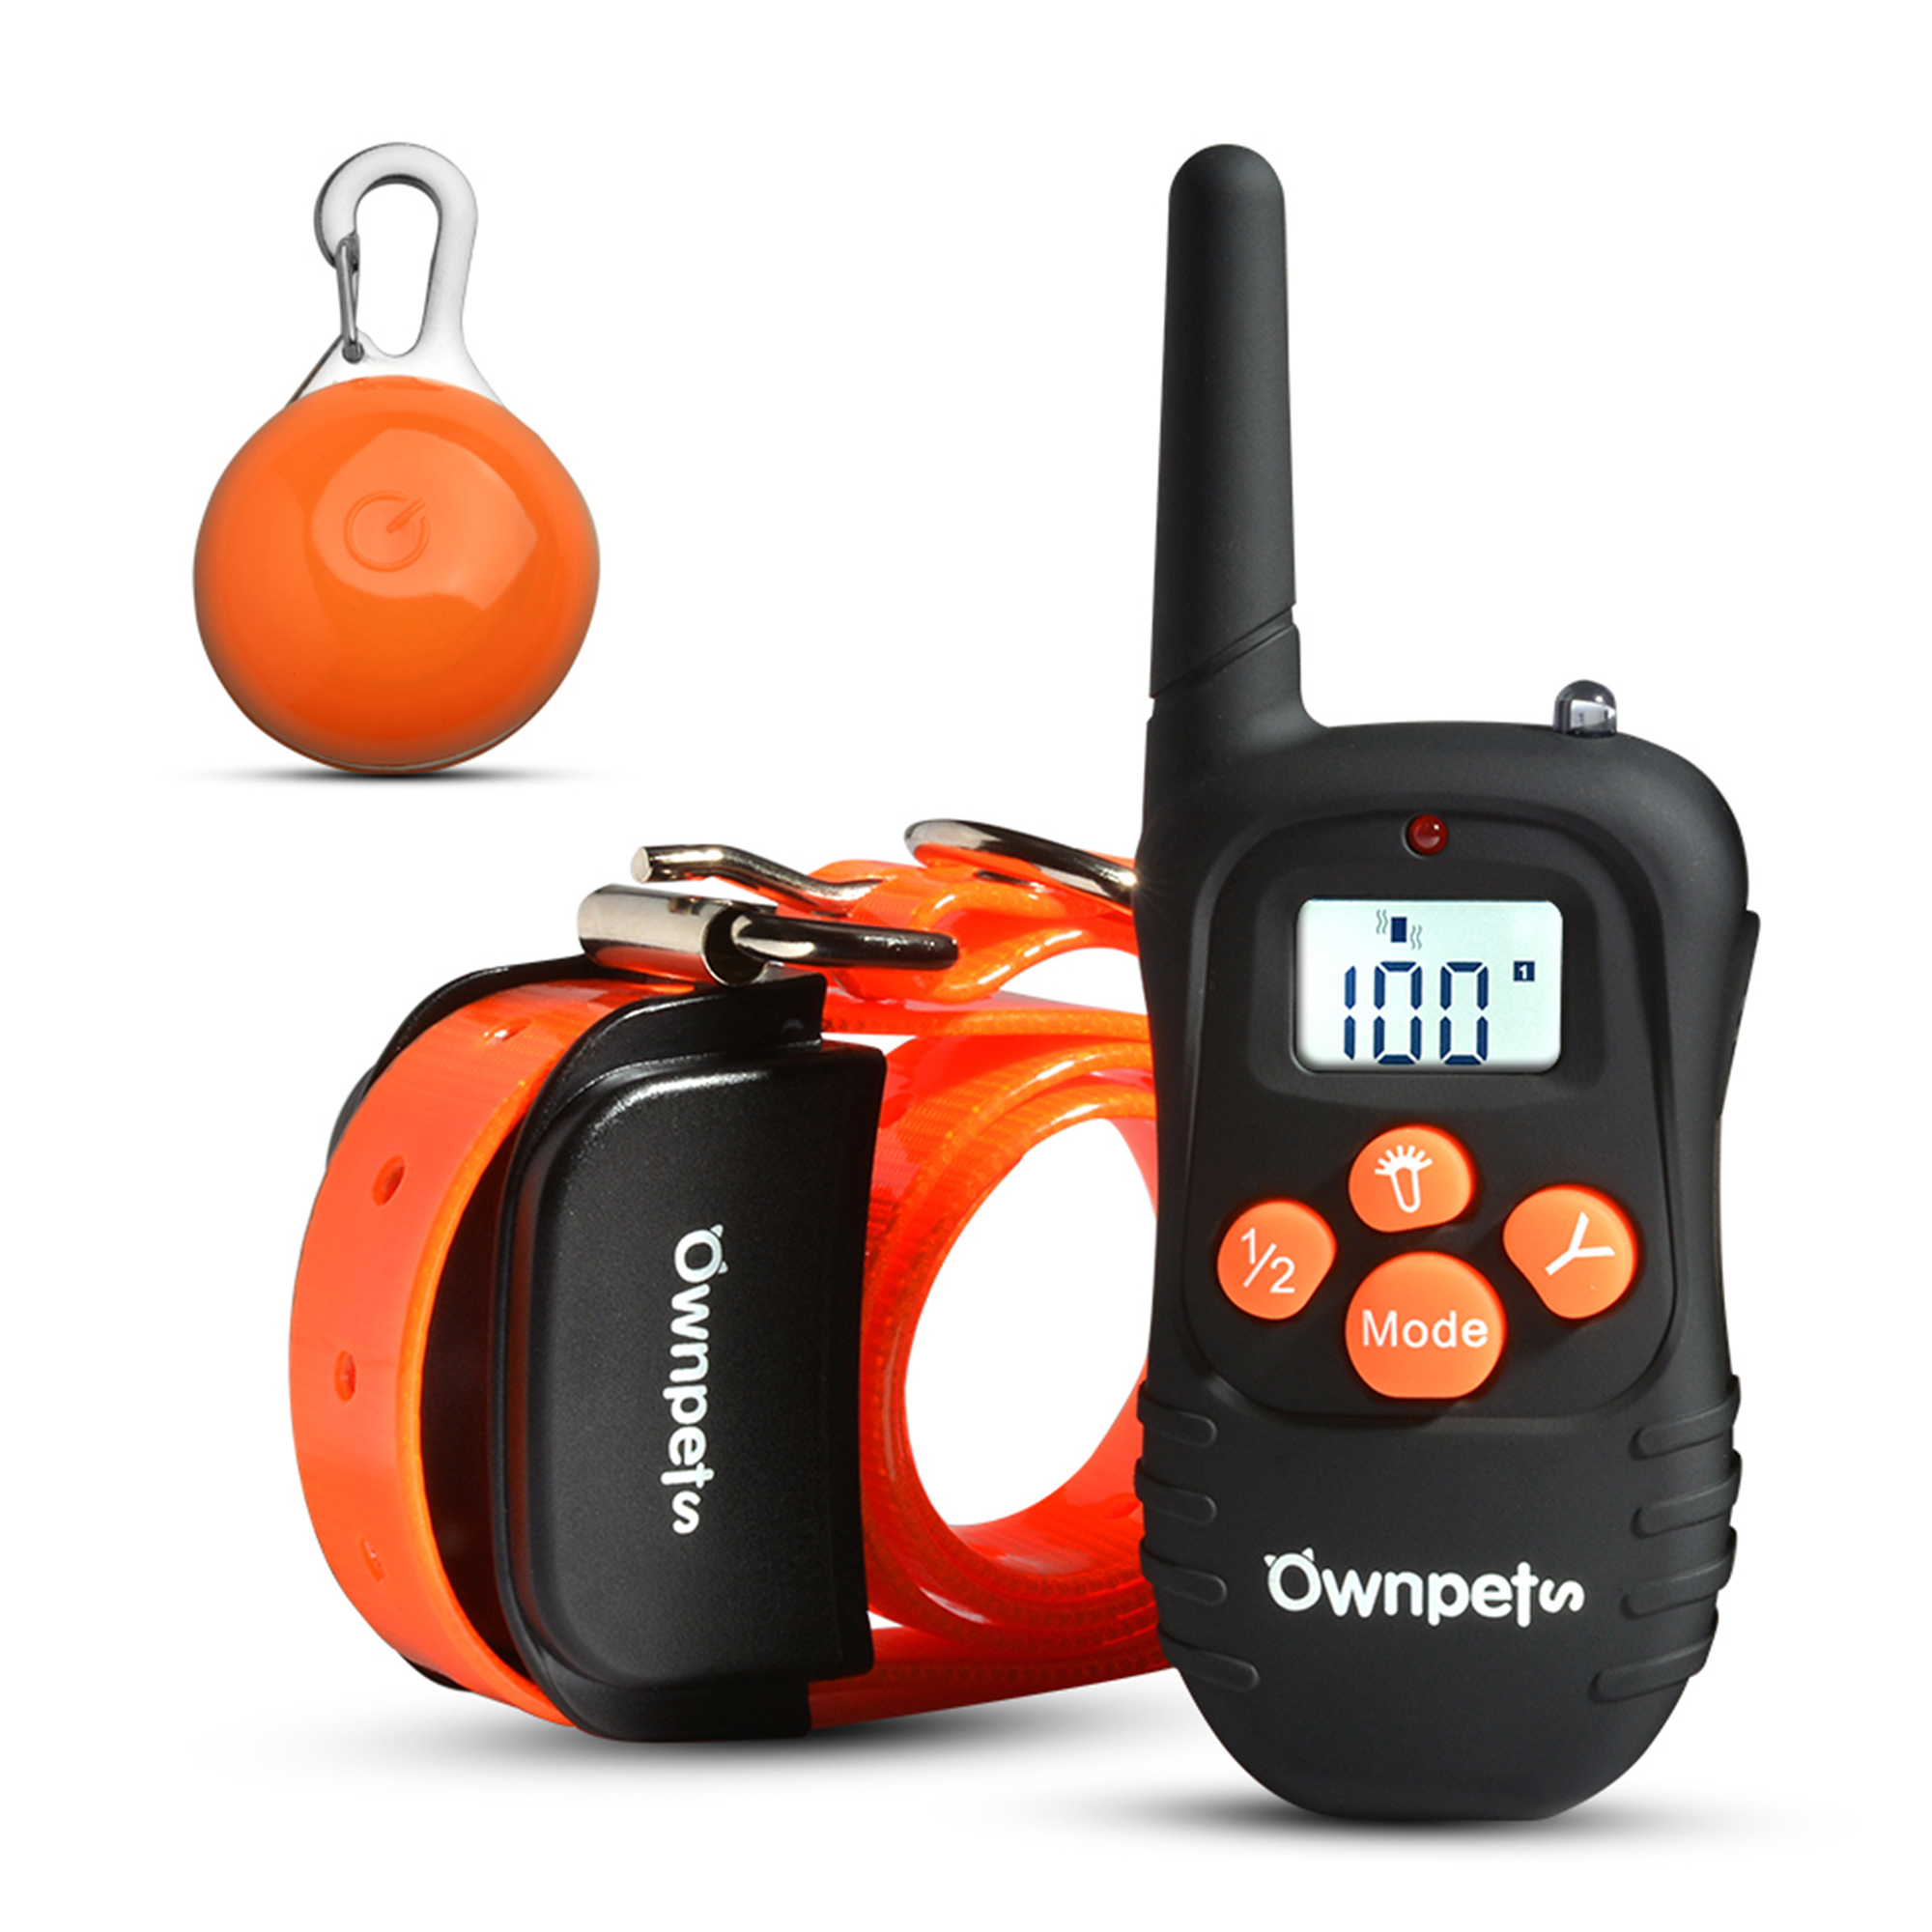 Ownpets 330 Yard 100levels Rechargeable Waterproof LCD Shock Vibra Remote Pet Dog Training Collar